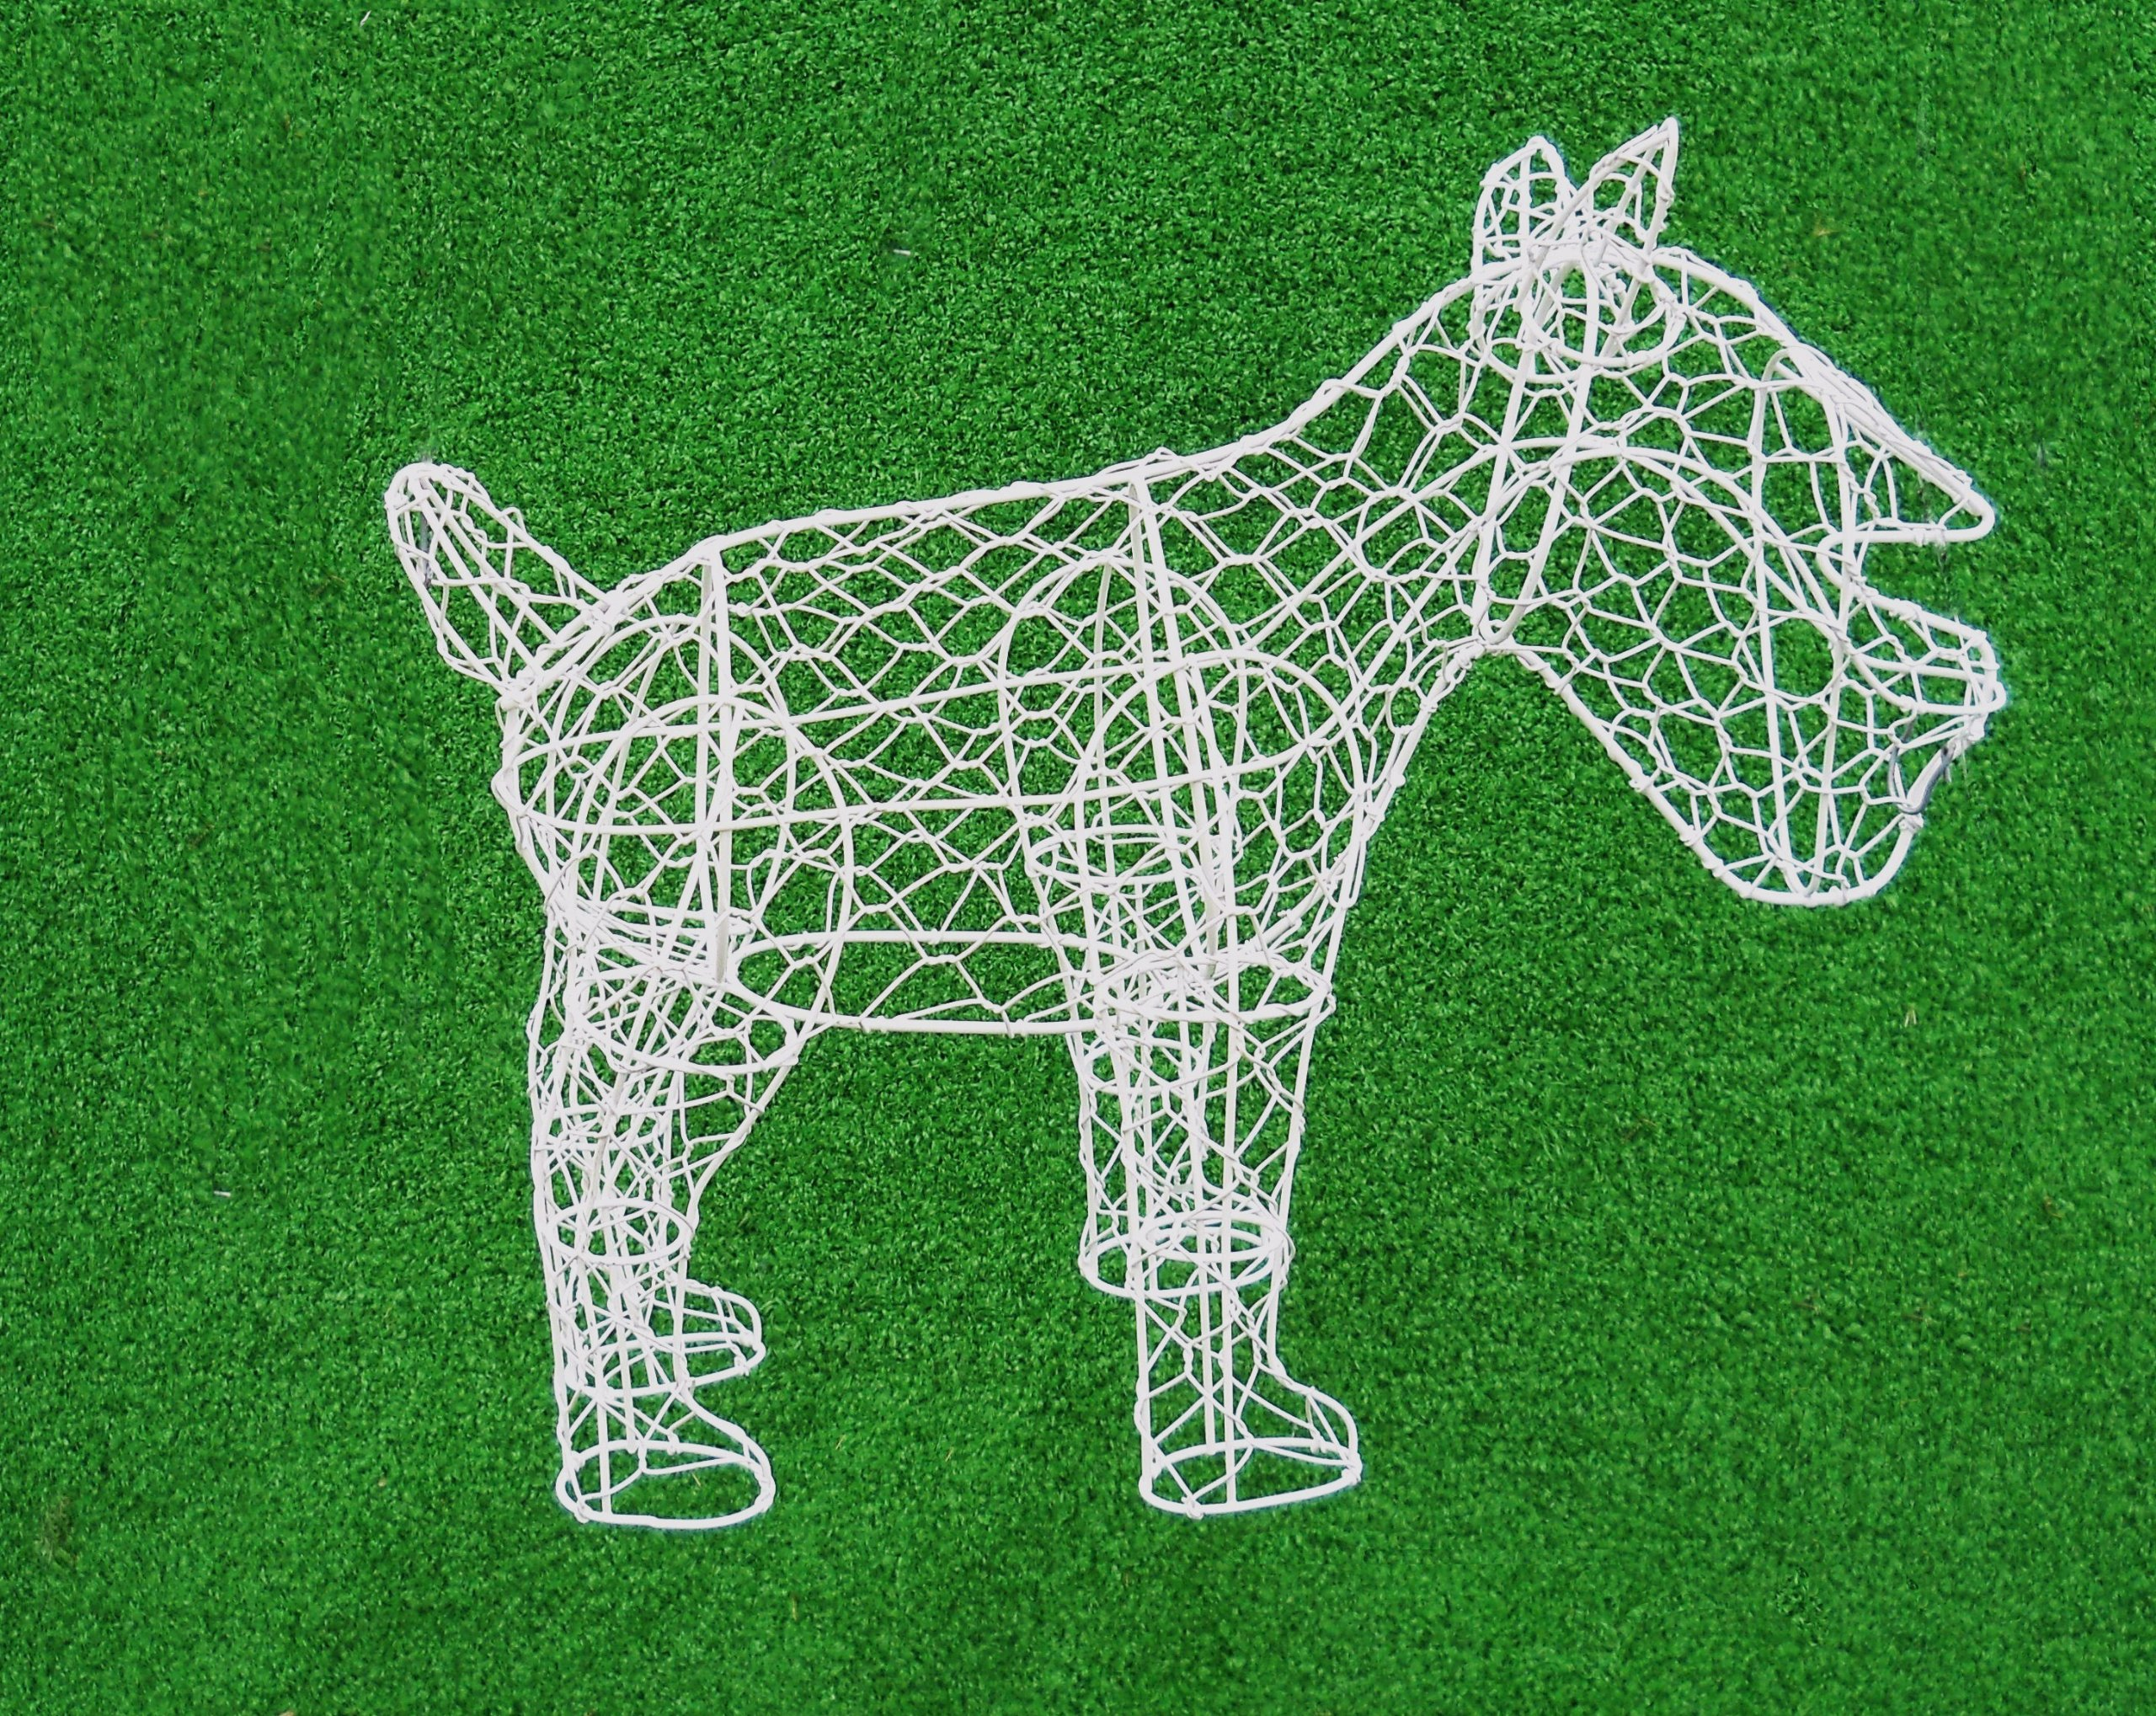 Schnauzer 12 inches high x 14 inches long x 6 inches wide Indoor Outdoor Hand Wired Animal Topiary Frame Structure